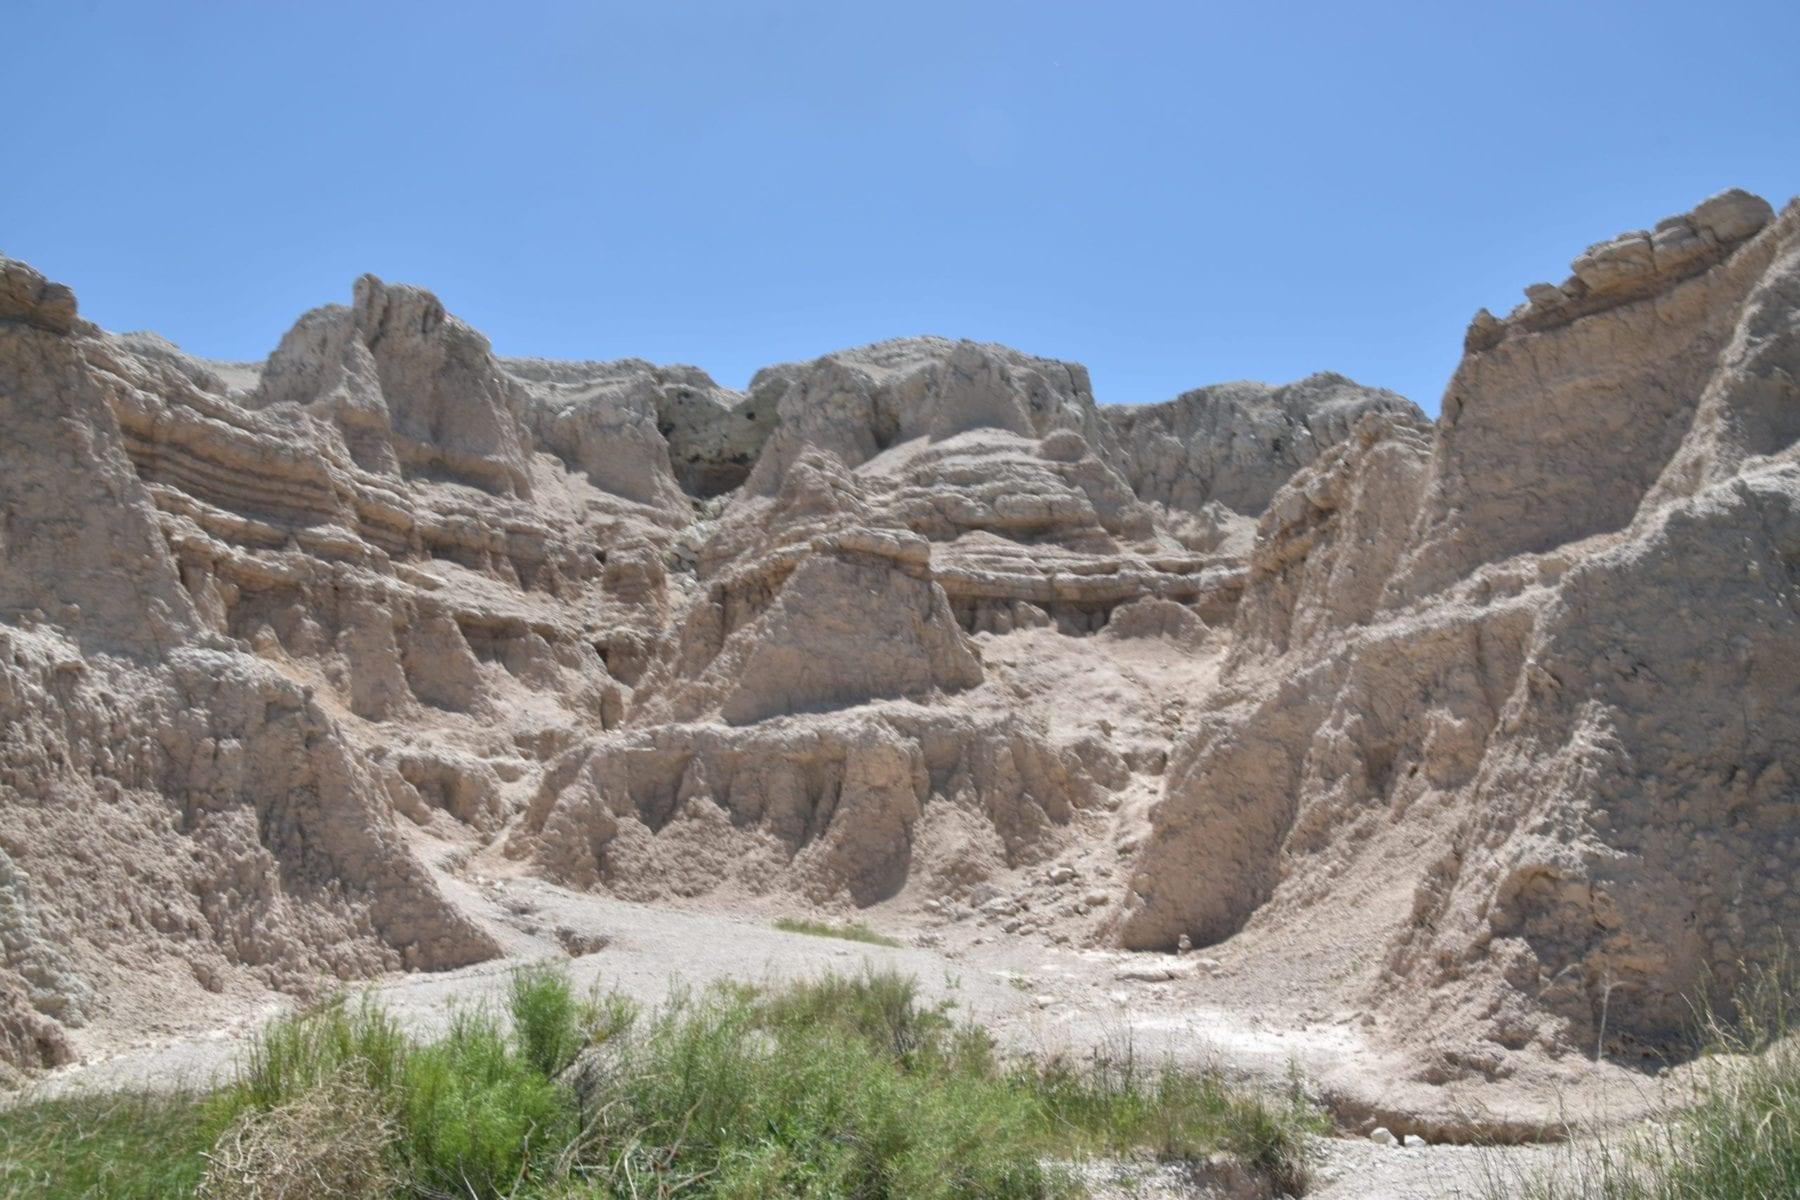 Hikes at Badlands